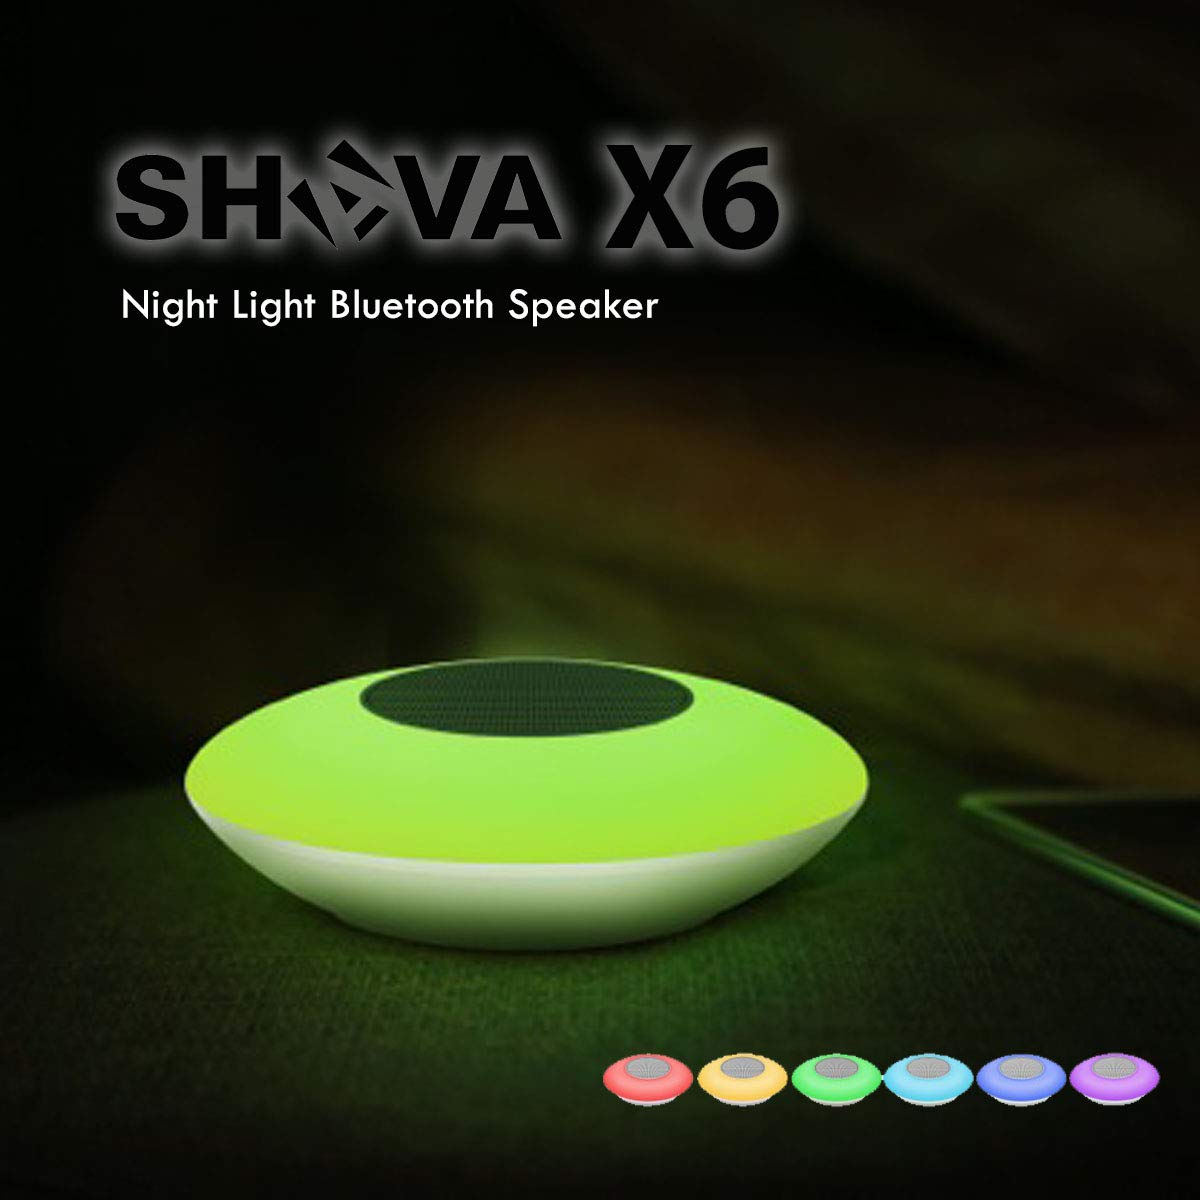 Awesome Light up Bluetooth speaker!